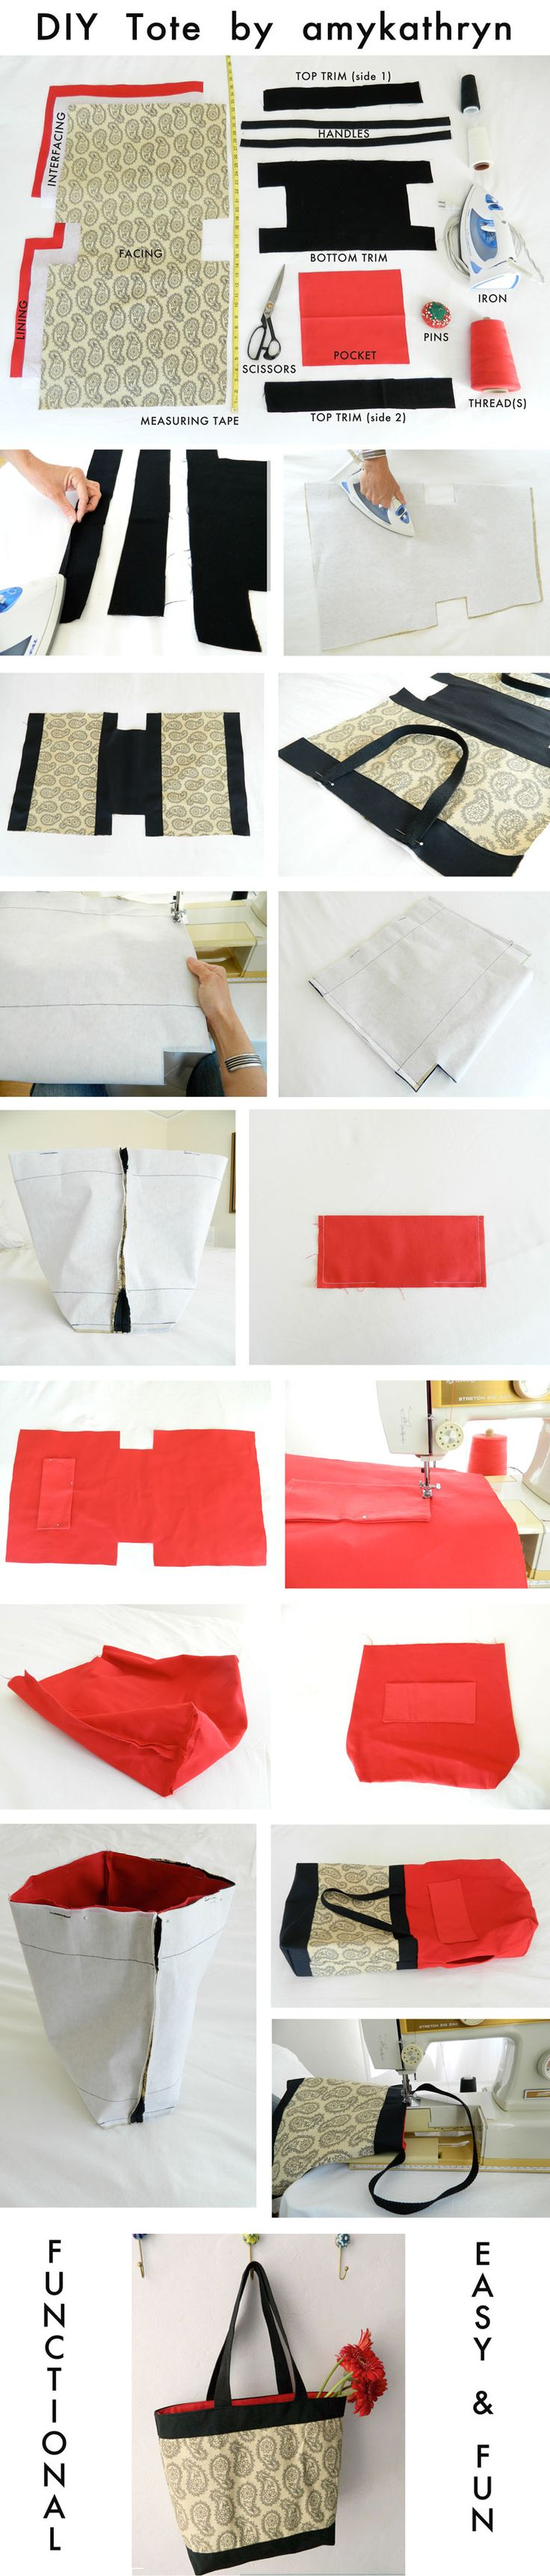 Make your own tote